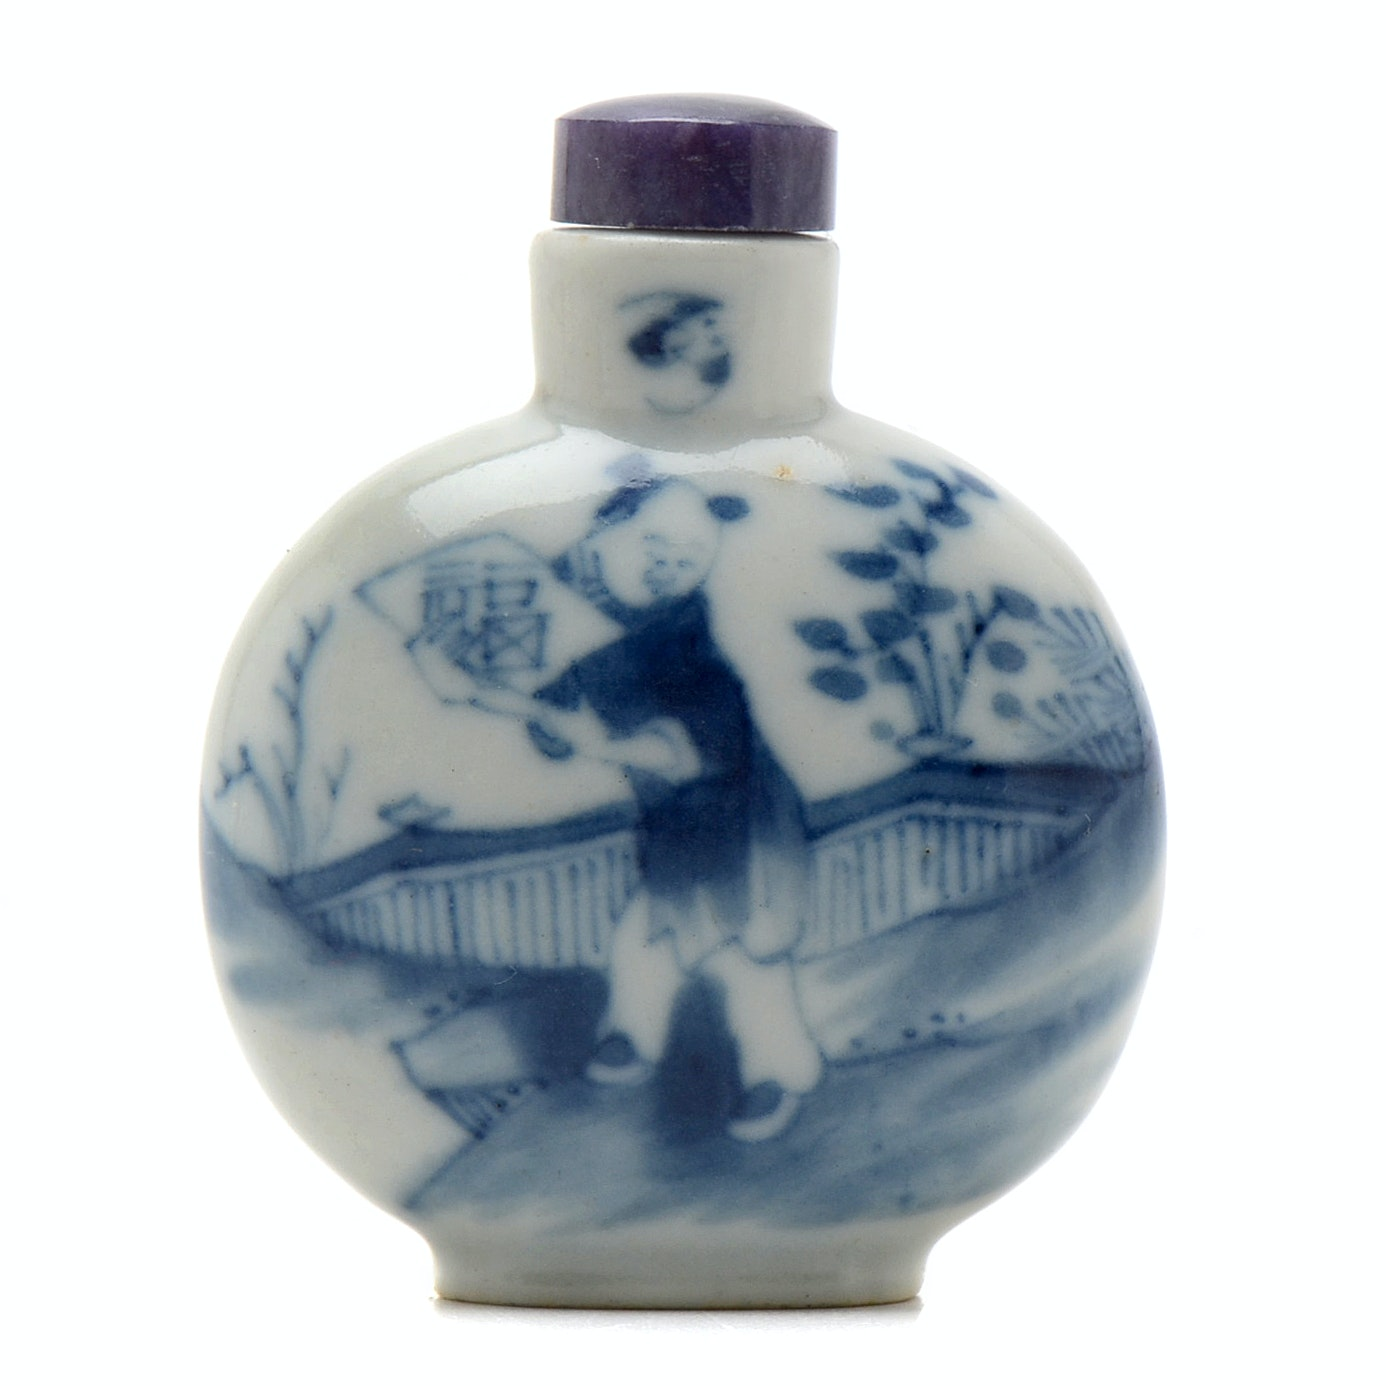 Qing Dynasty Chinese Blue and White Porcelain Snuff Bottle